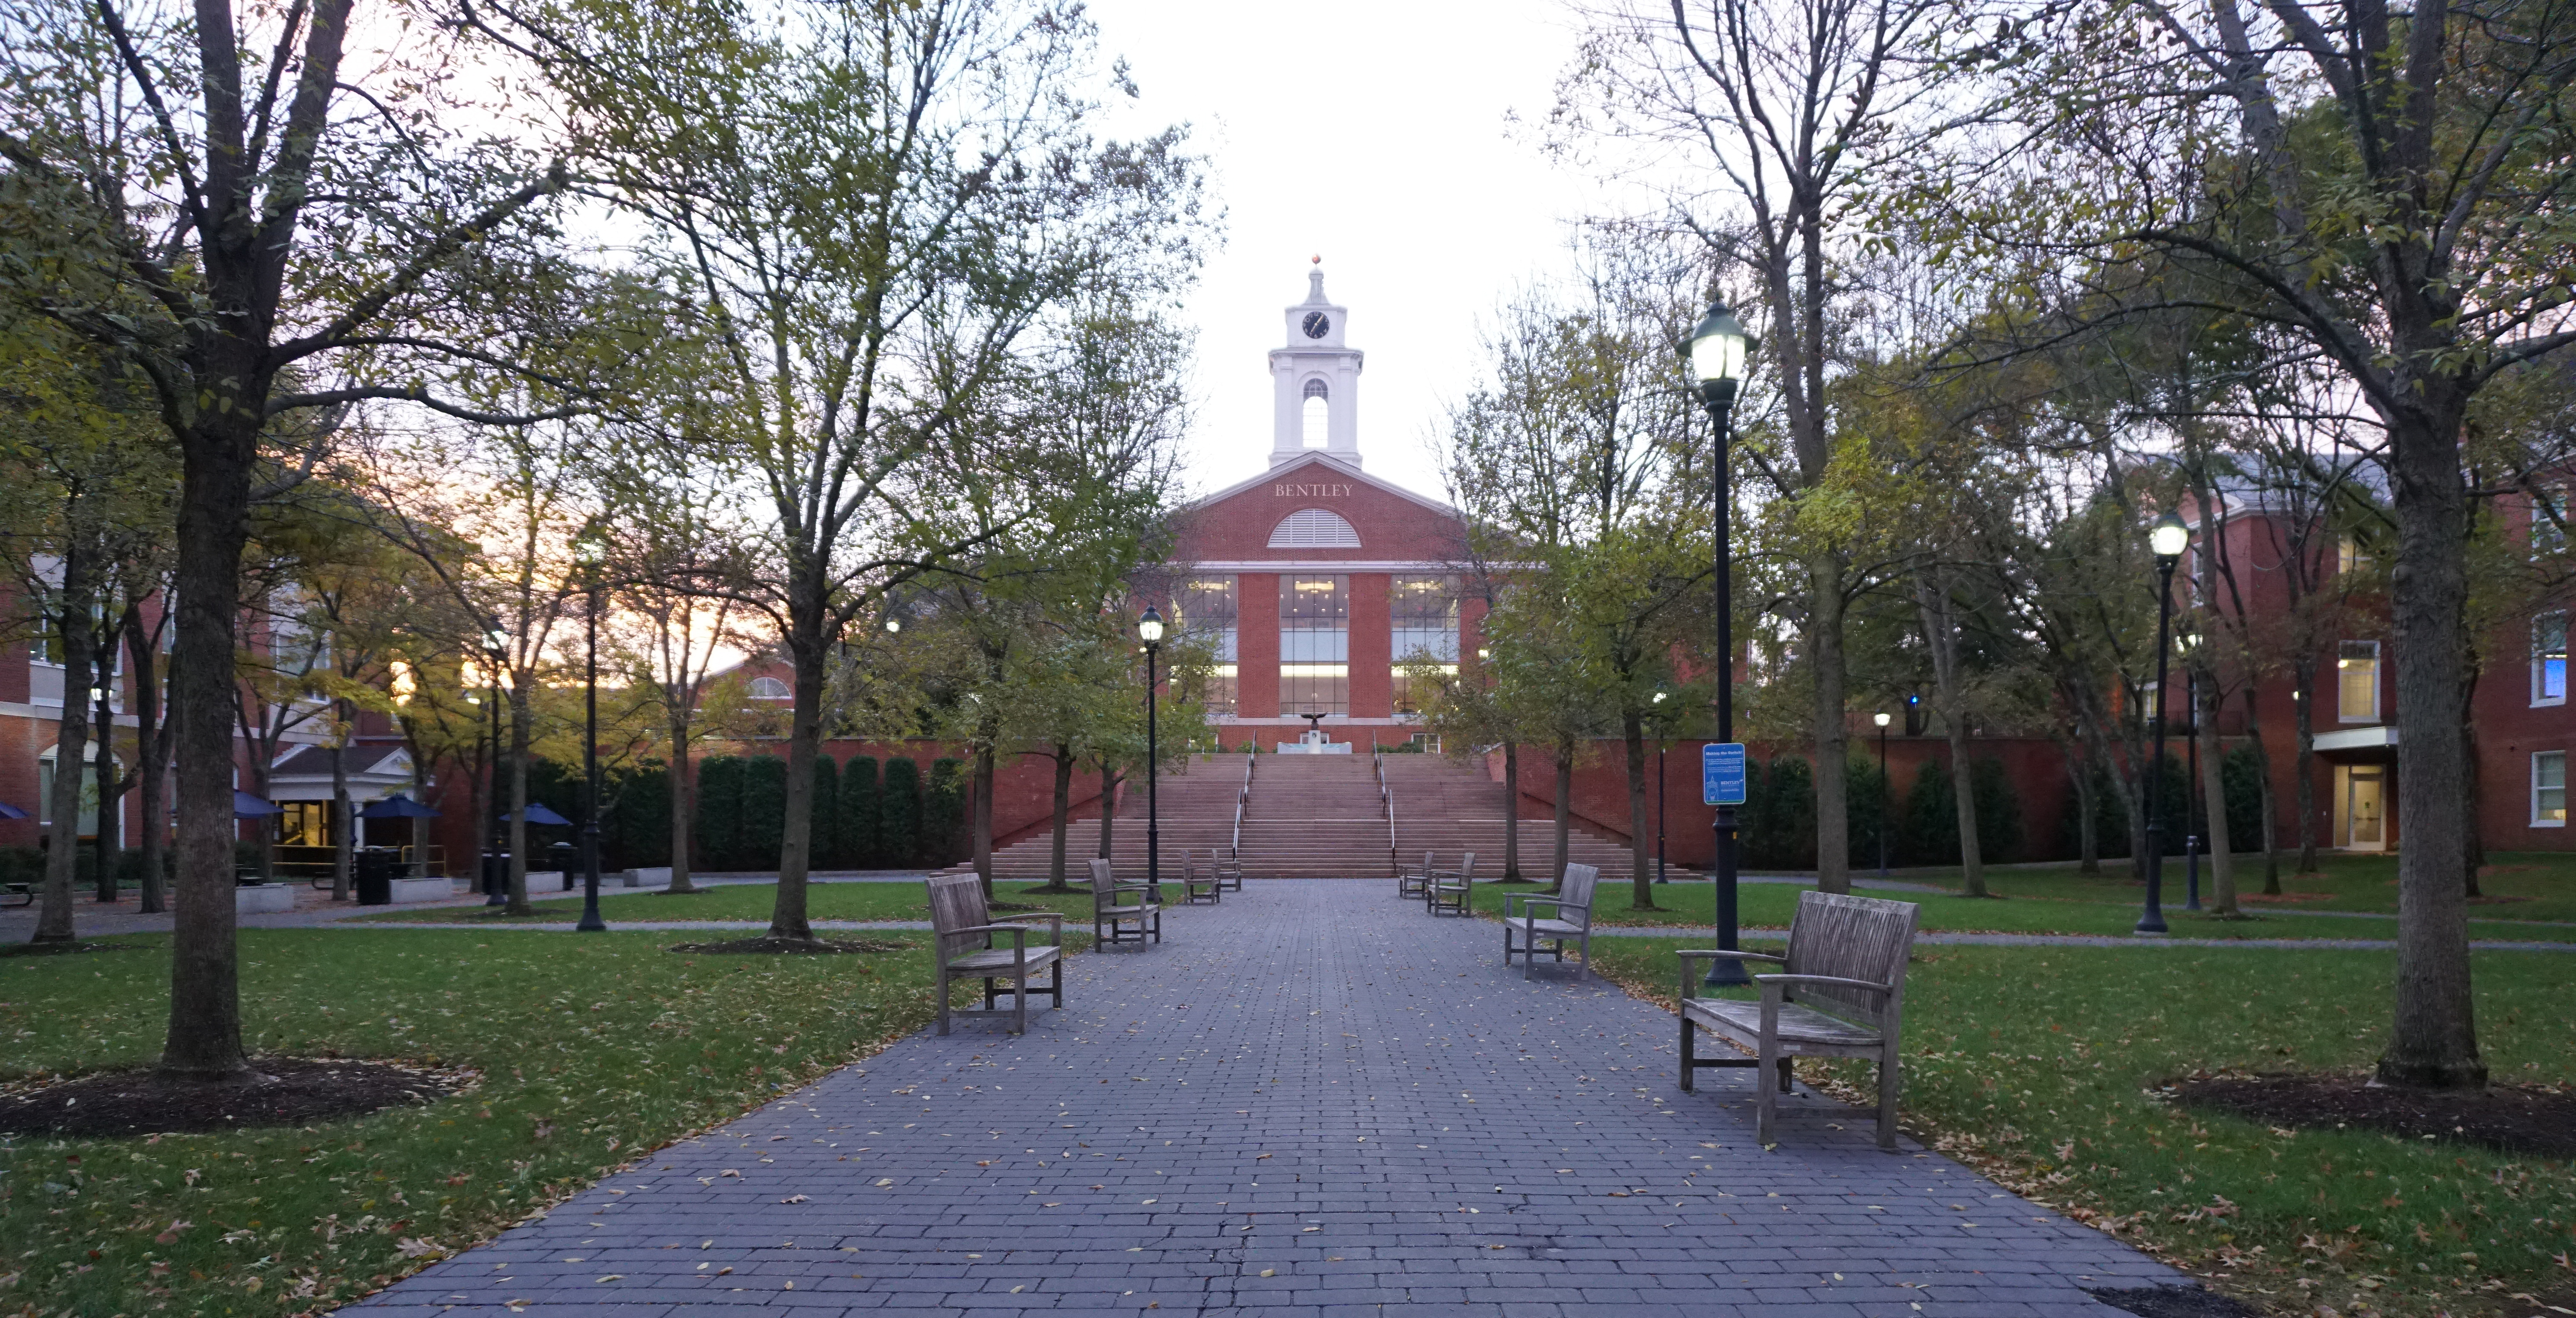 Courtyard between academic buildings at Bentley University